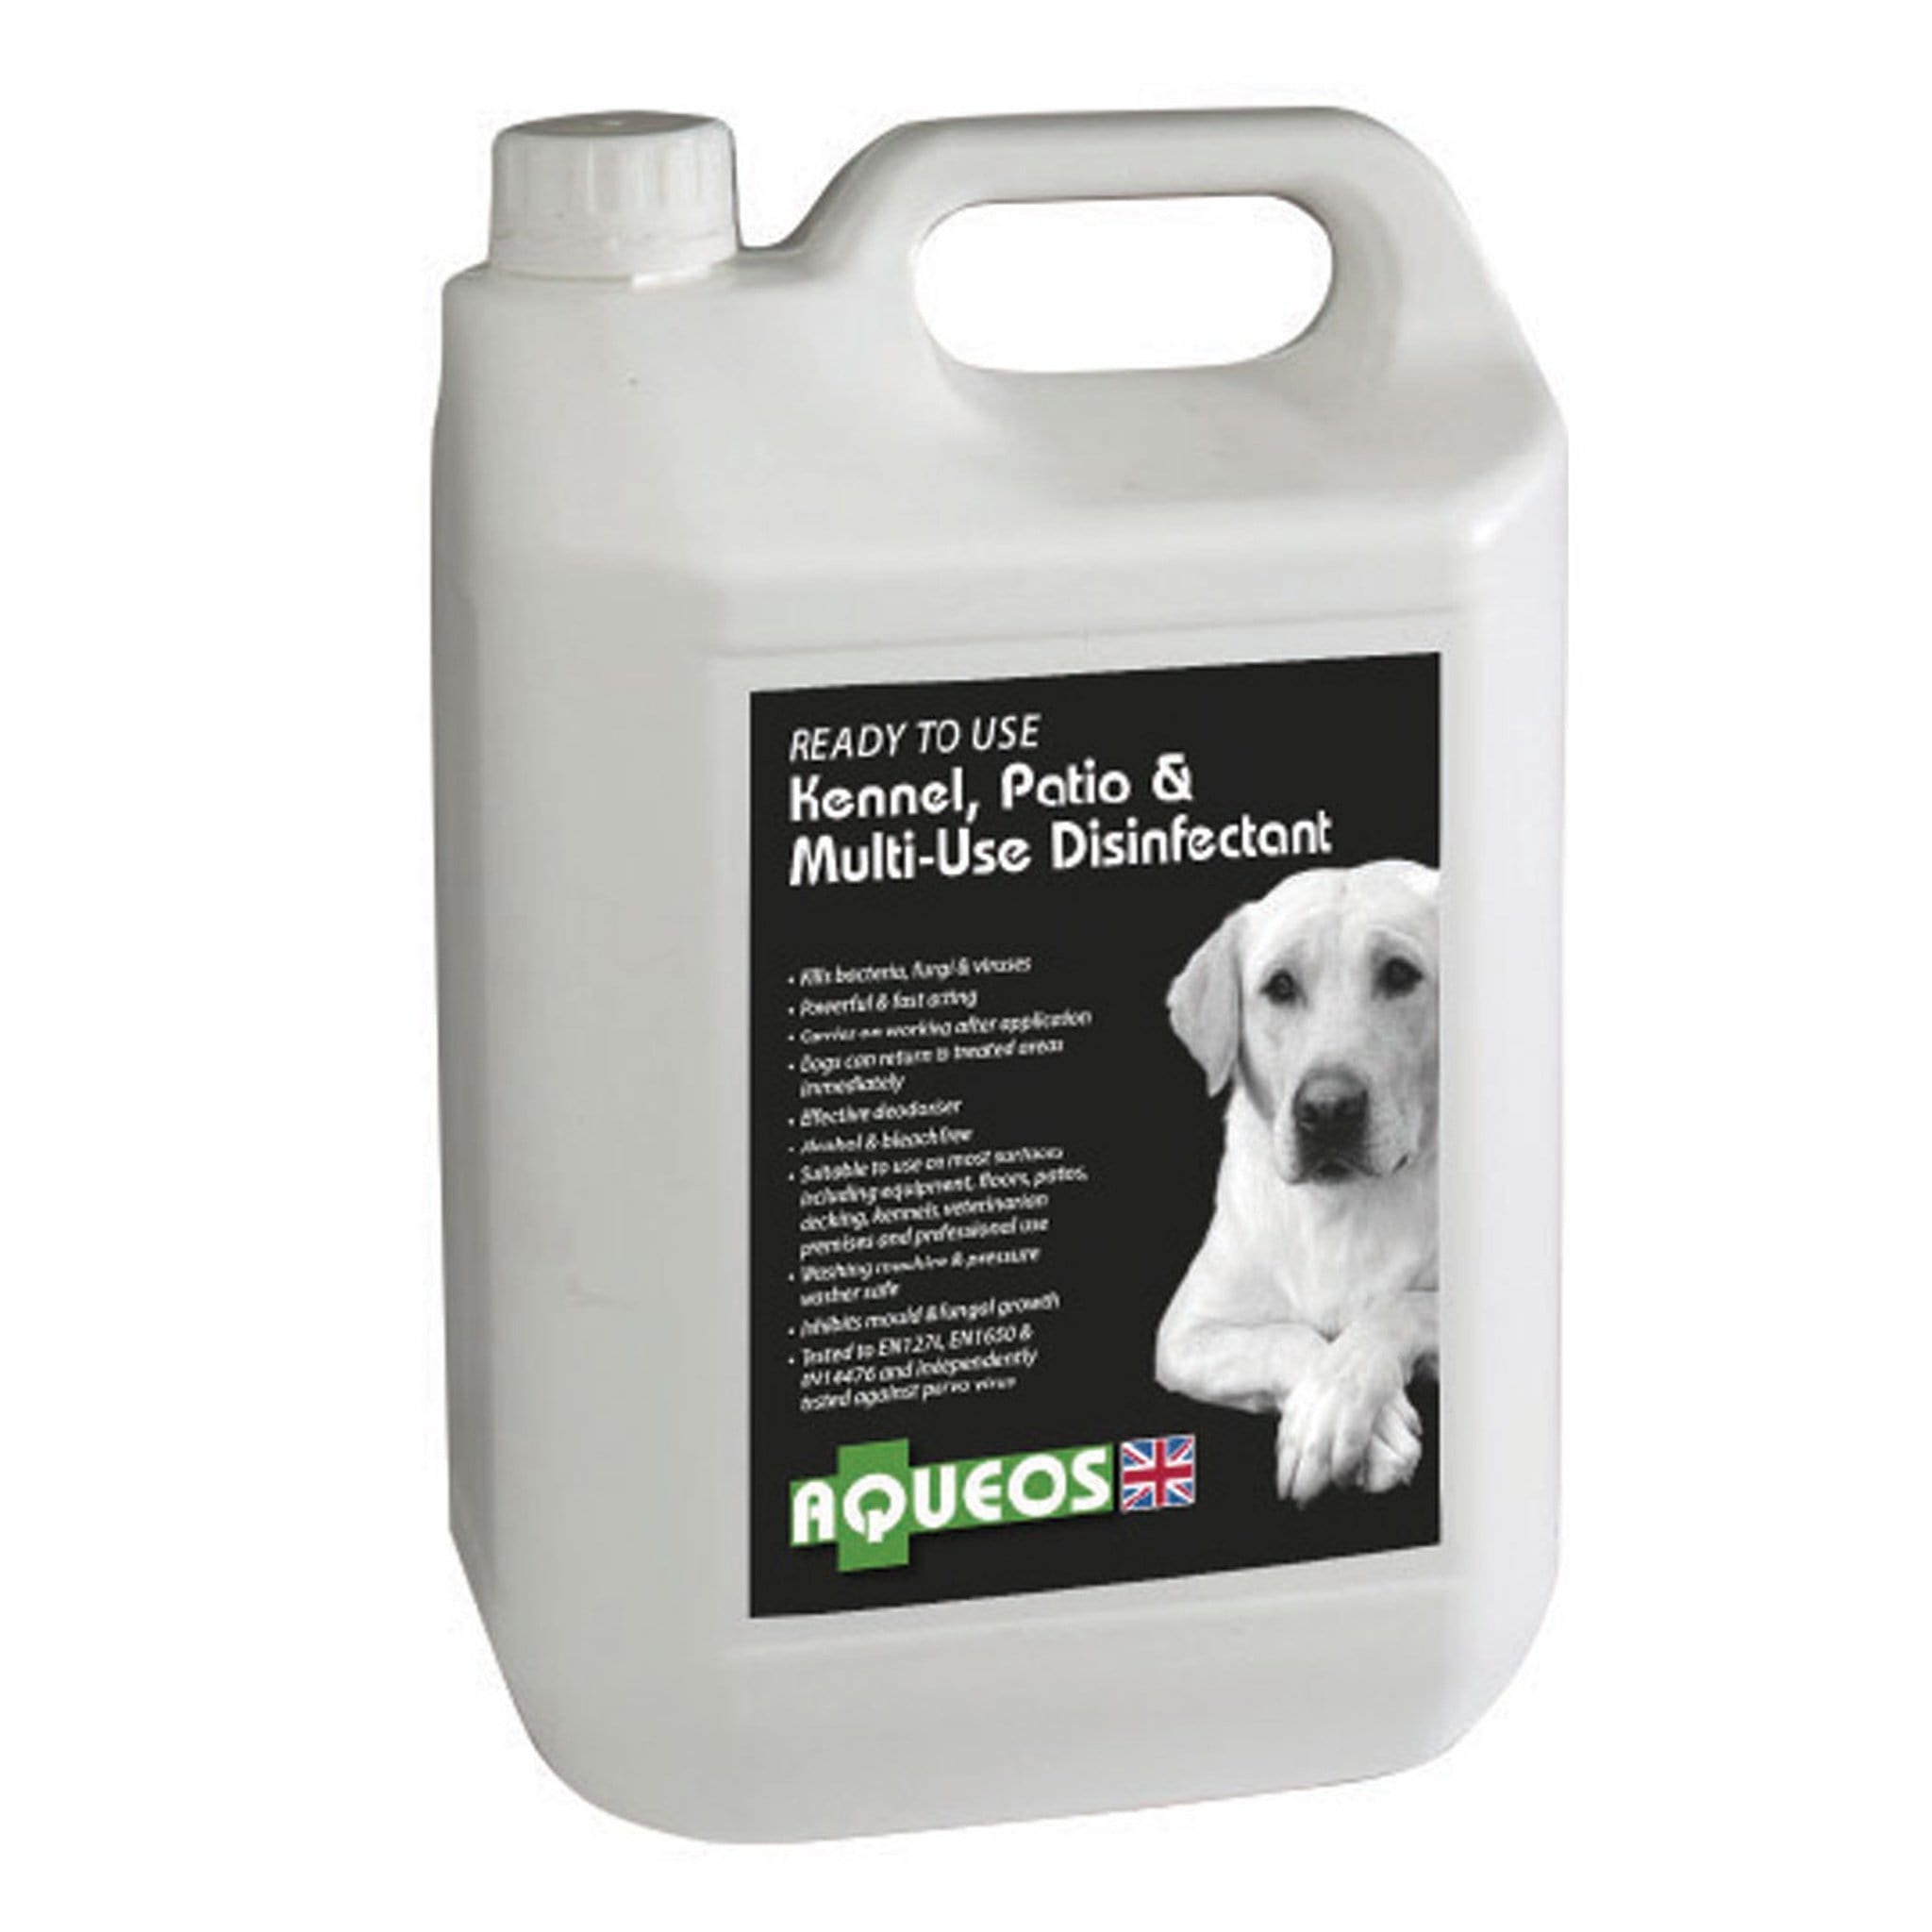 Aqueos Canine Ready To Use Disinfectant 5 Litre 10021